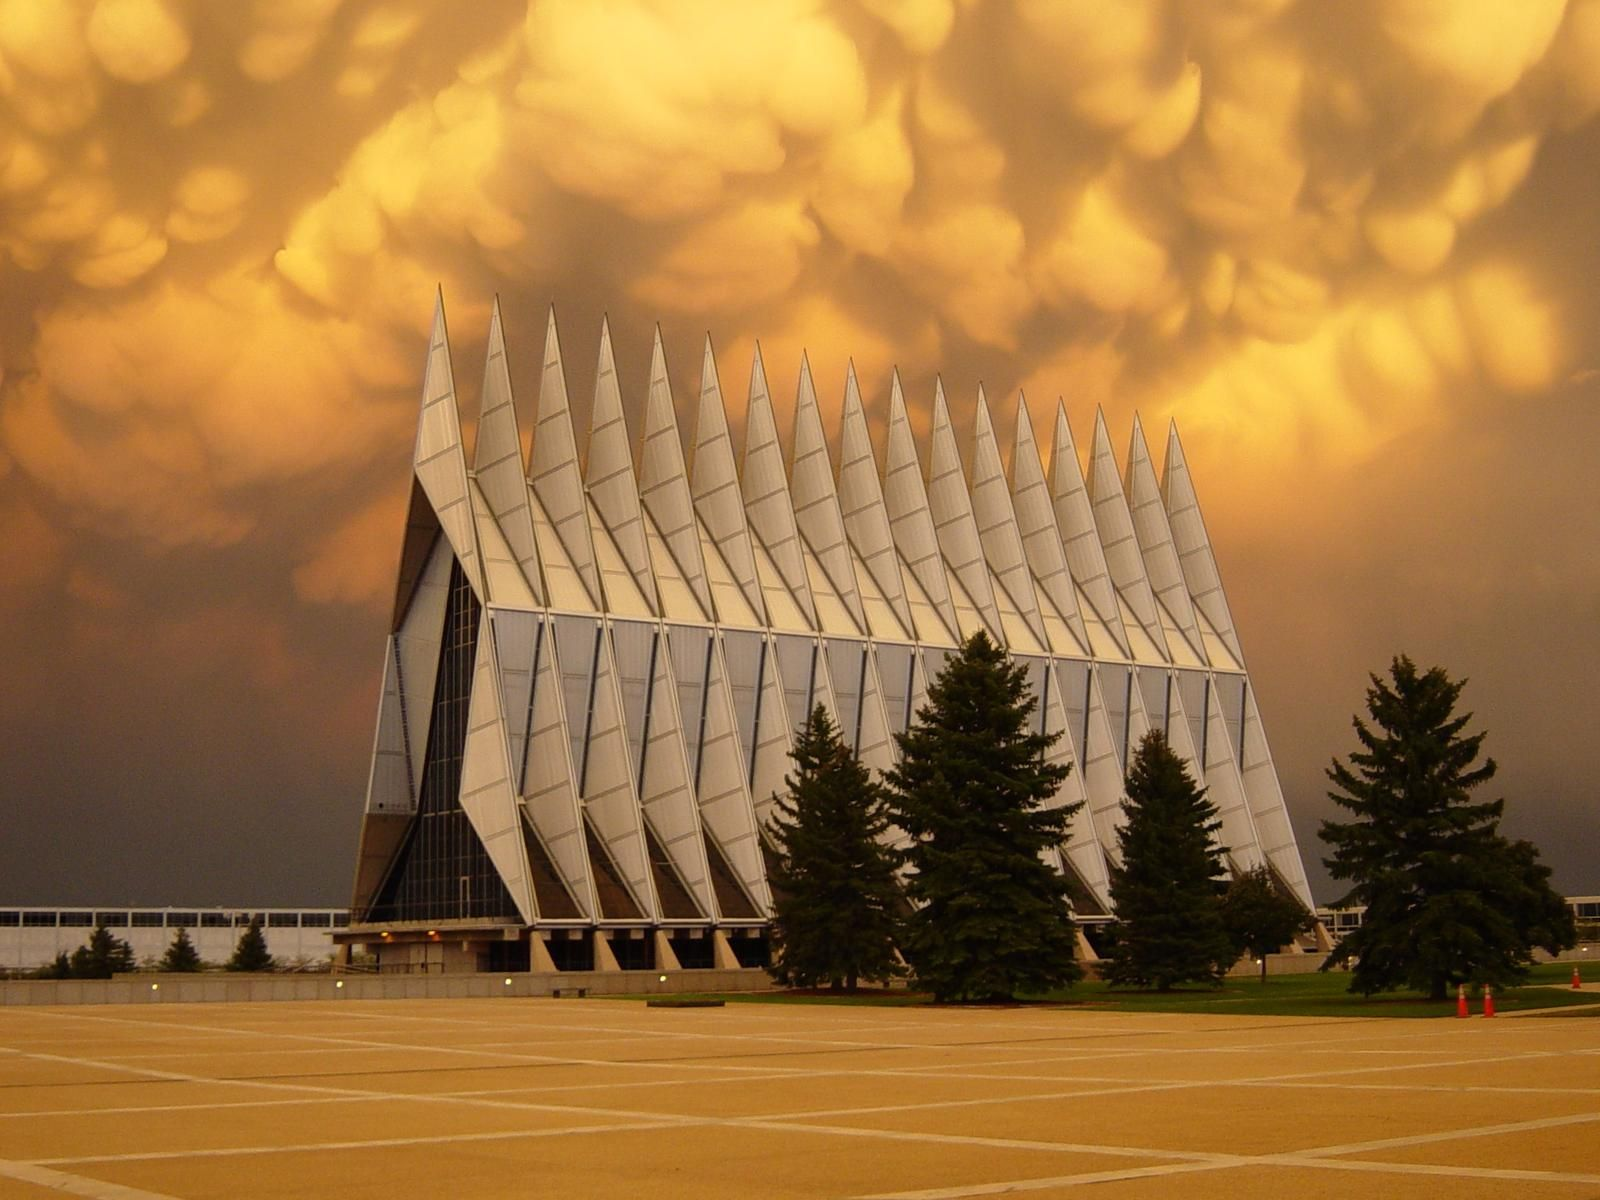 The United States Air Force Academy (Protestant) Chapel